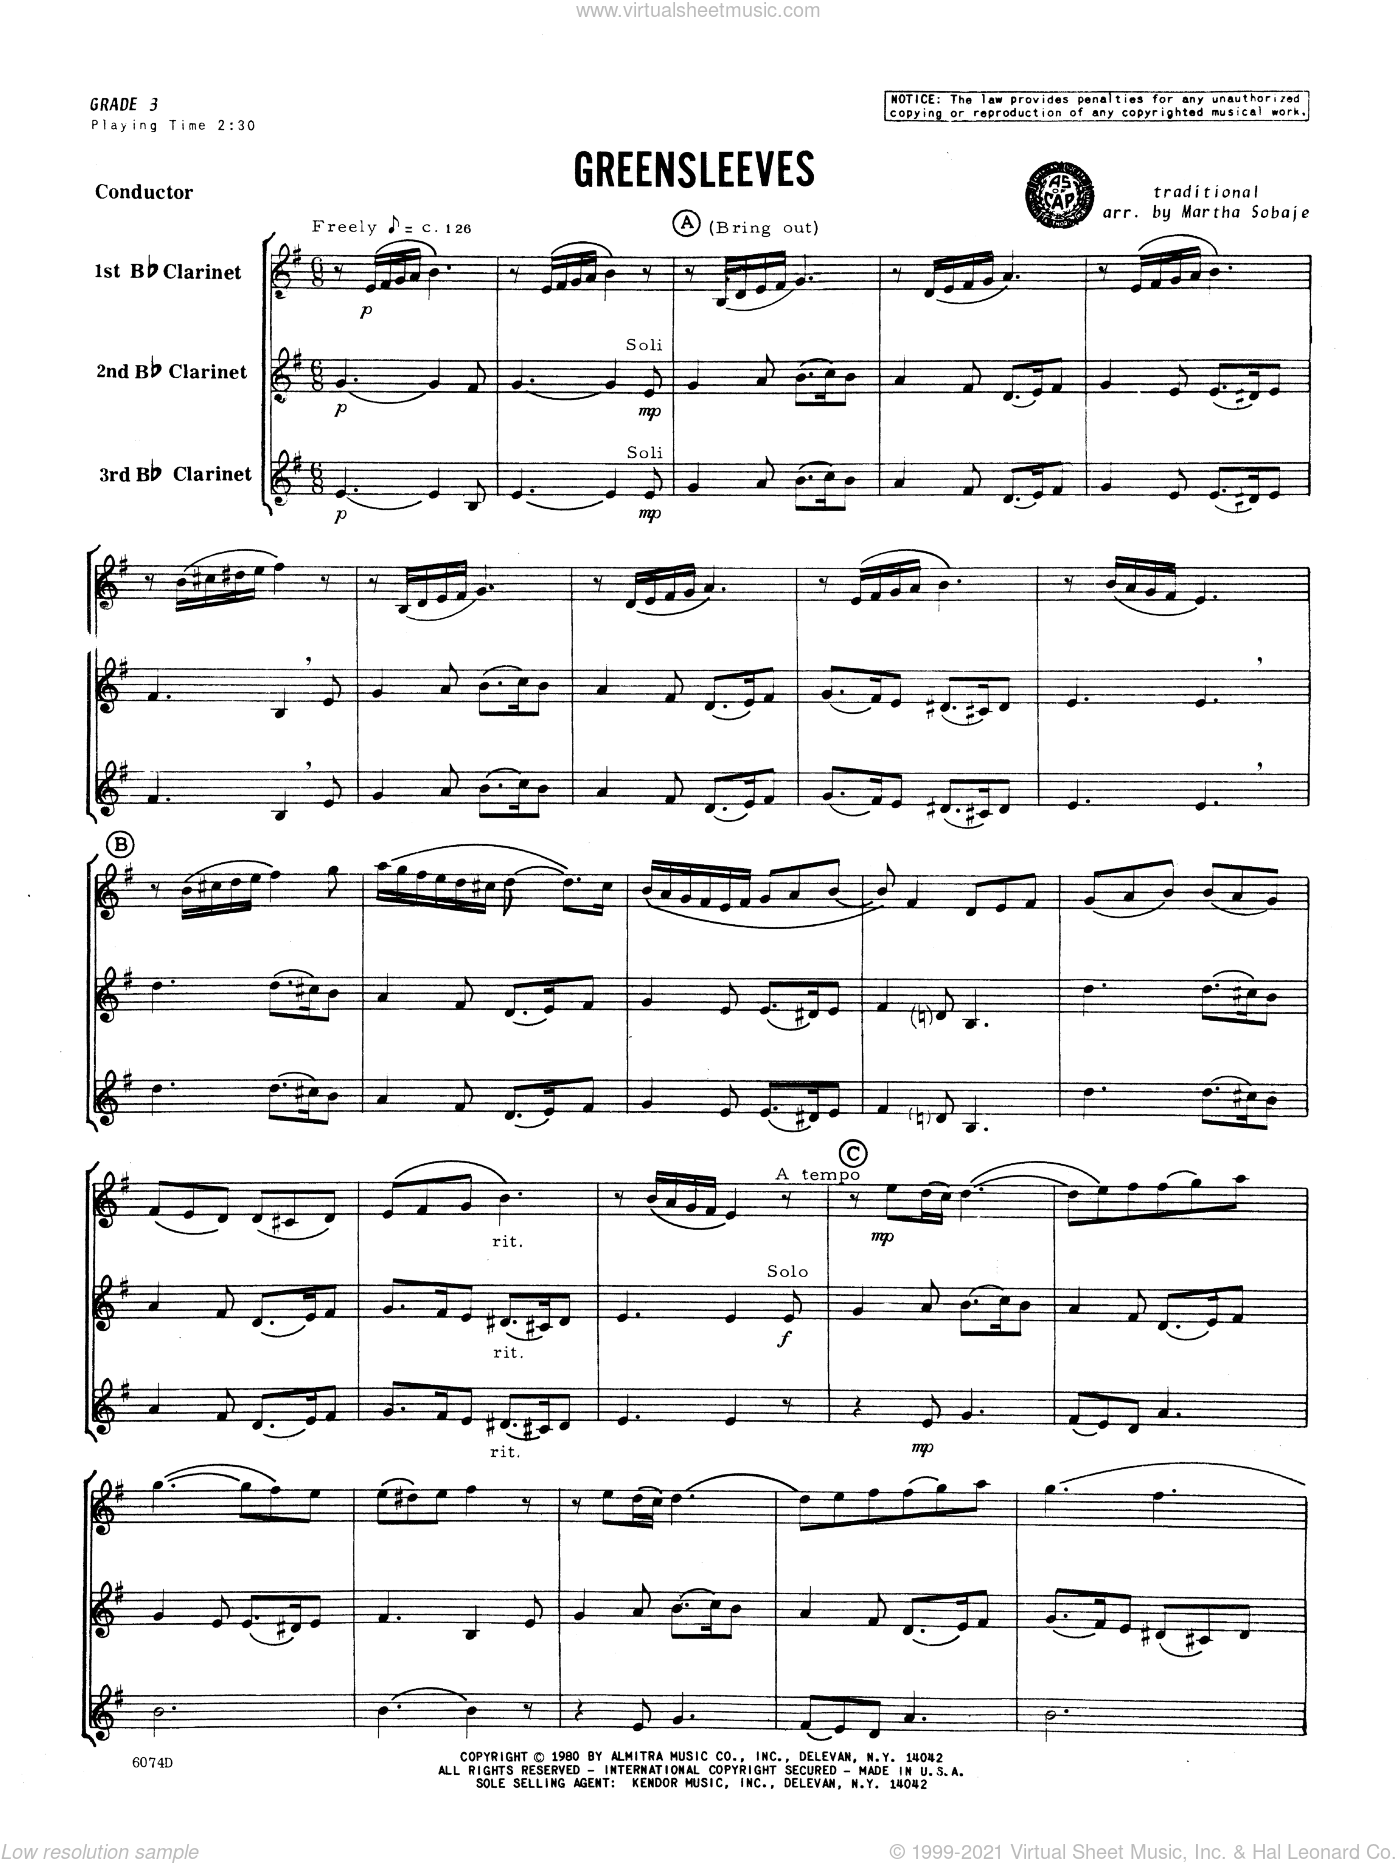 Greensleeves sheet music for clarinet trio (full score)